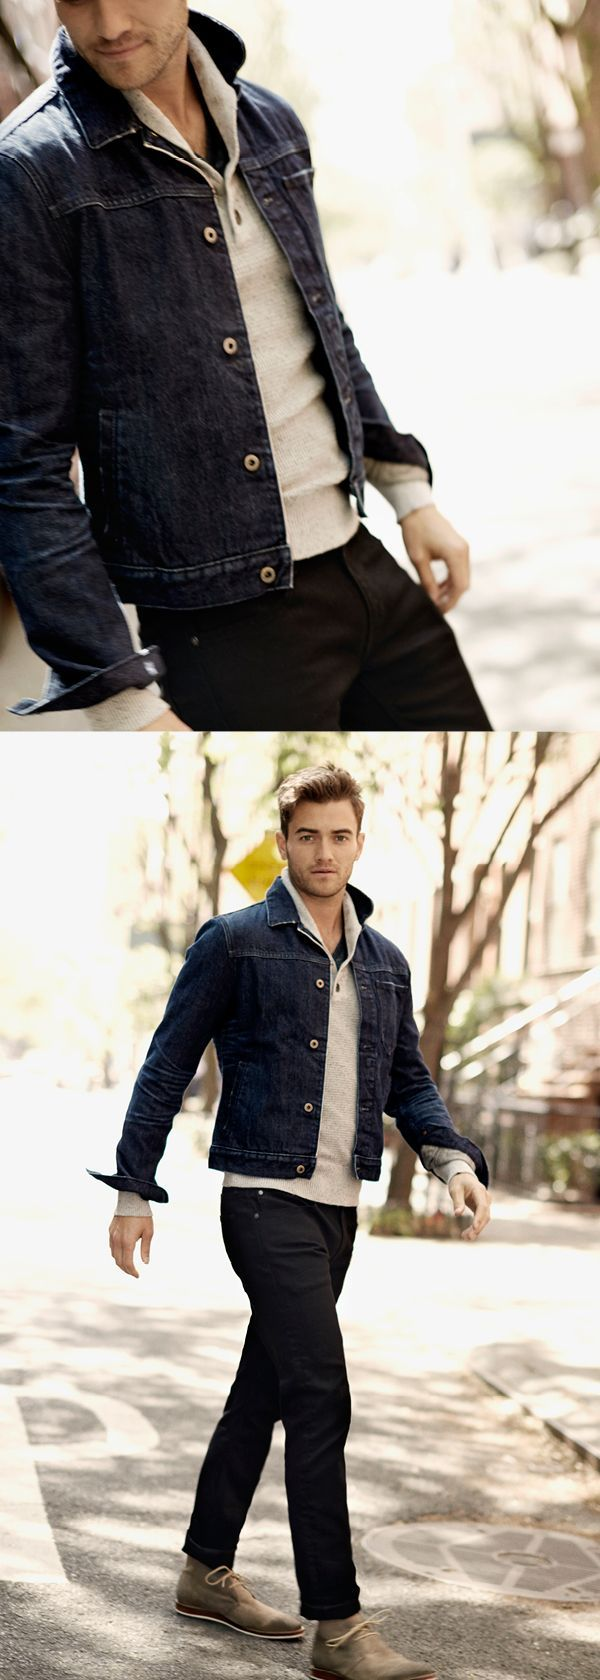 Keep Your Look Casual Yet Polished In Our Classic Dark Denim Jacket Pair This Jean Jacket Over A Lightwe Denim Jacket Men Outfit Denim Jacket Men Mens Outfits [ 1680 x 600 Pixel ]